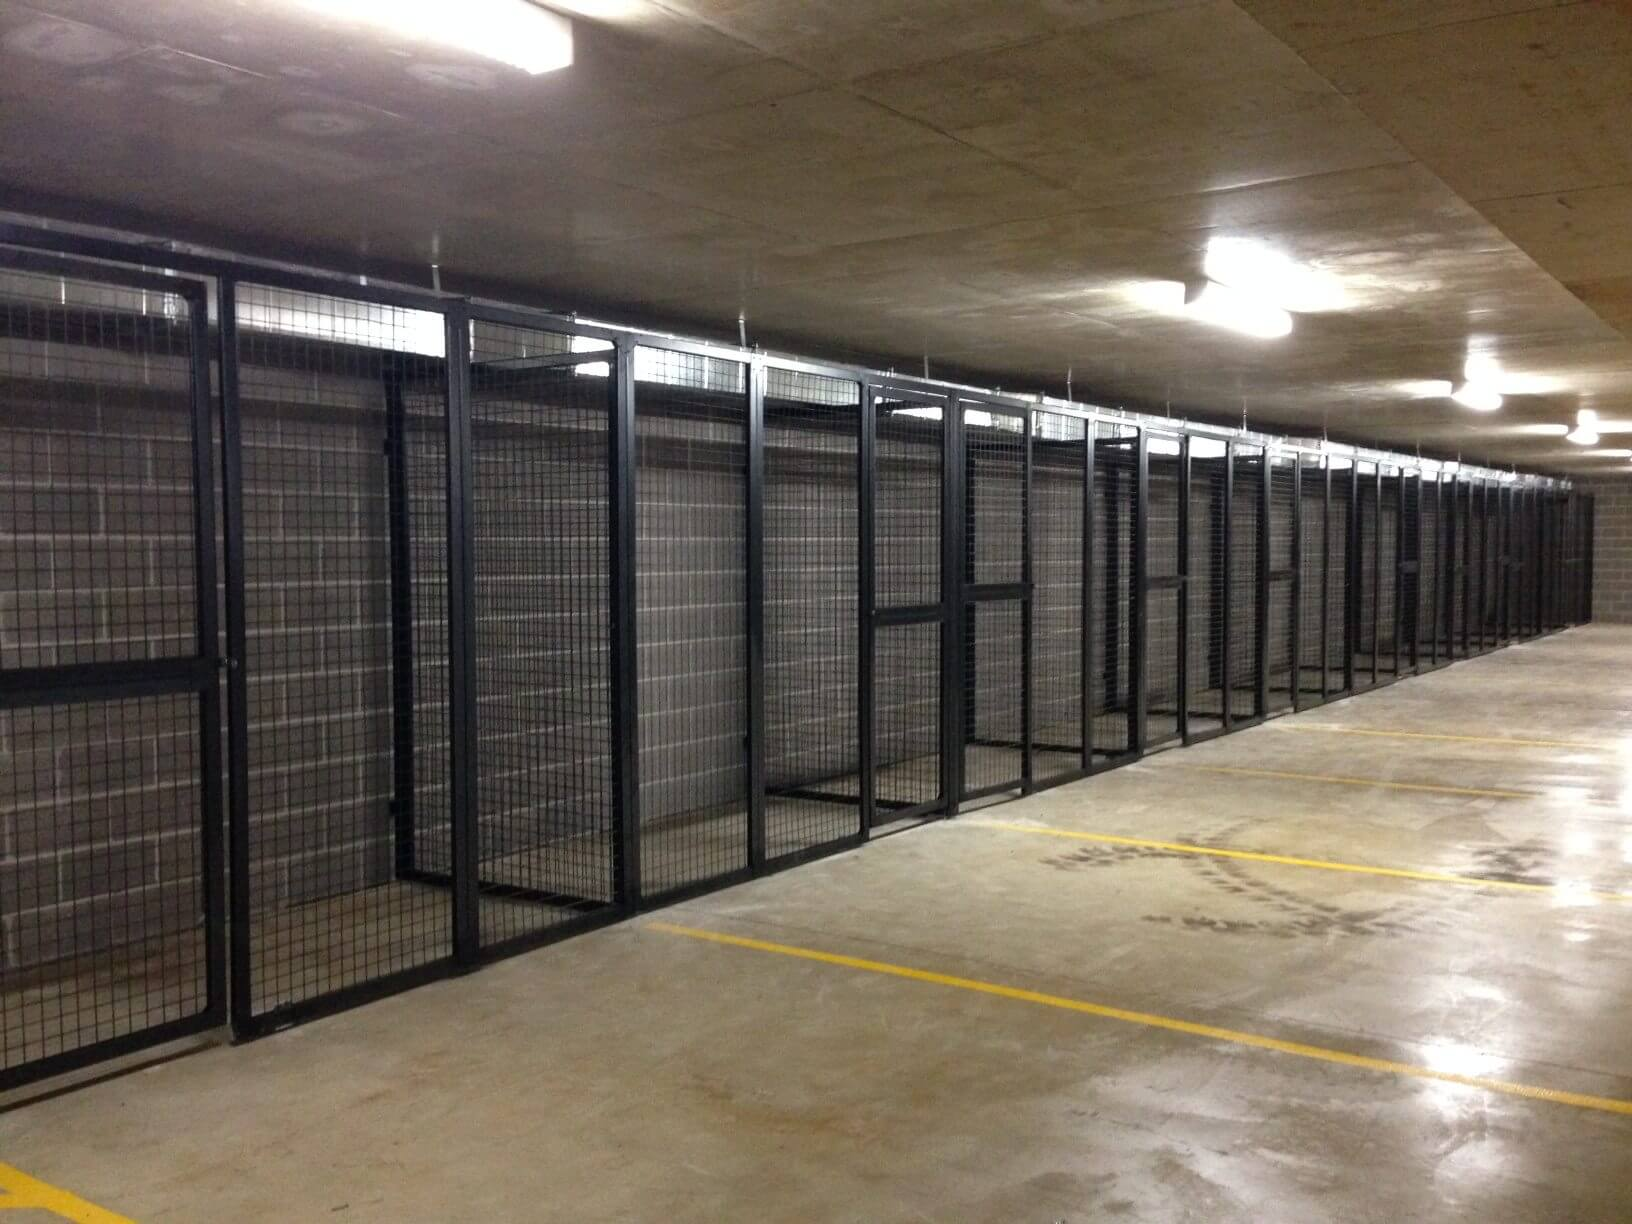 Car Park Storage Boxes  Cages  Sydney Bike Lockers  Partitiions